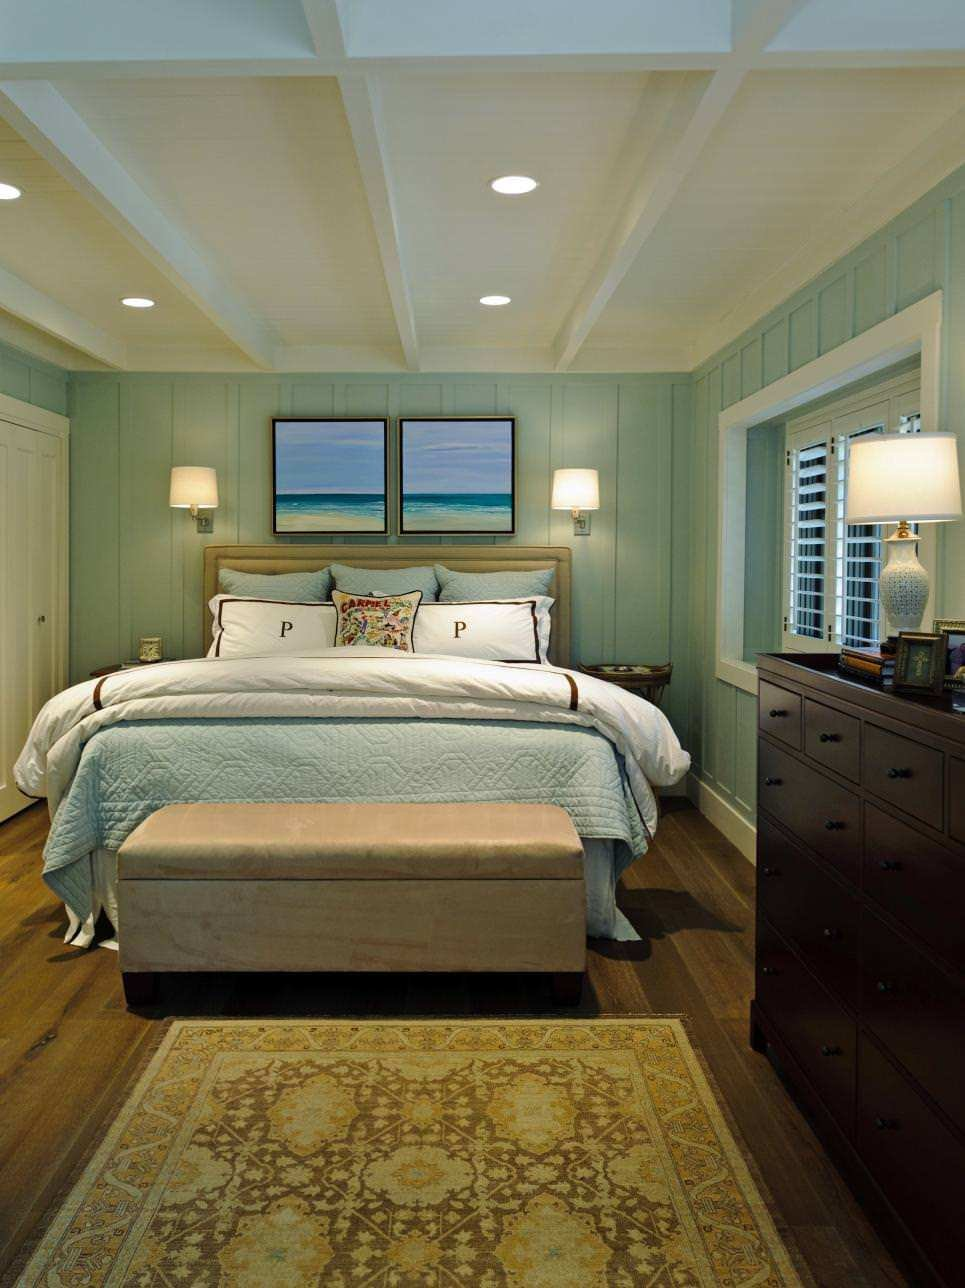 Best 23 Green Wall Designs Decor Ideas Design Trends With Pictures